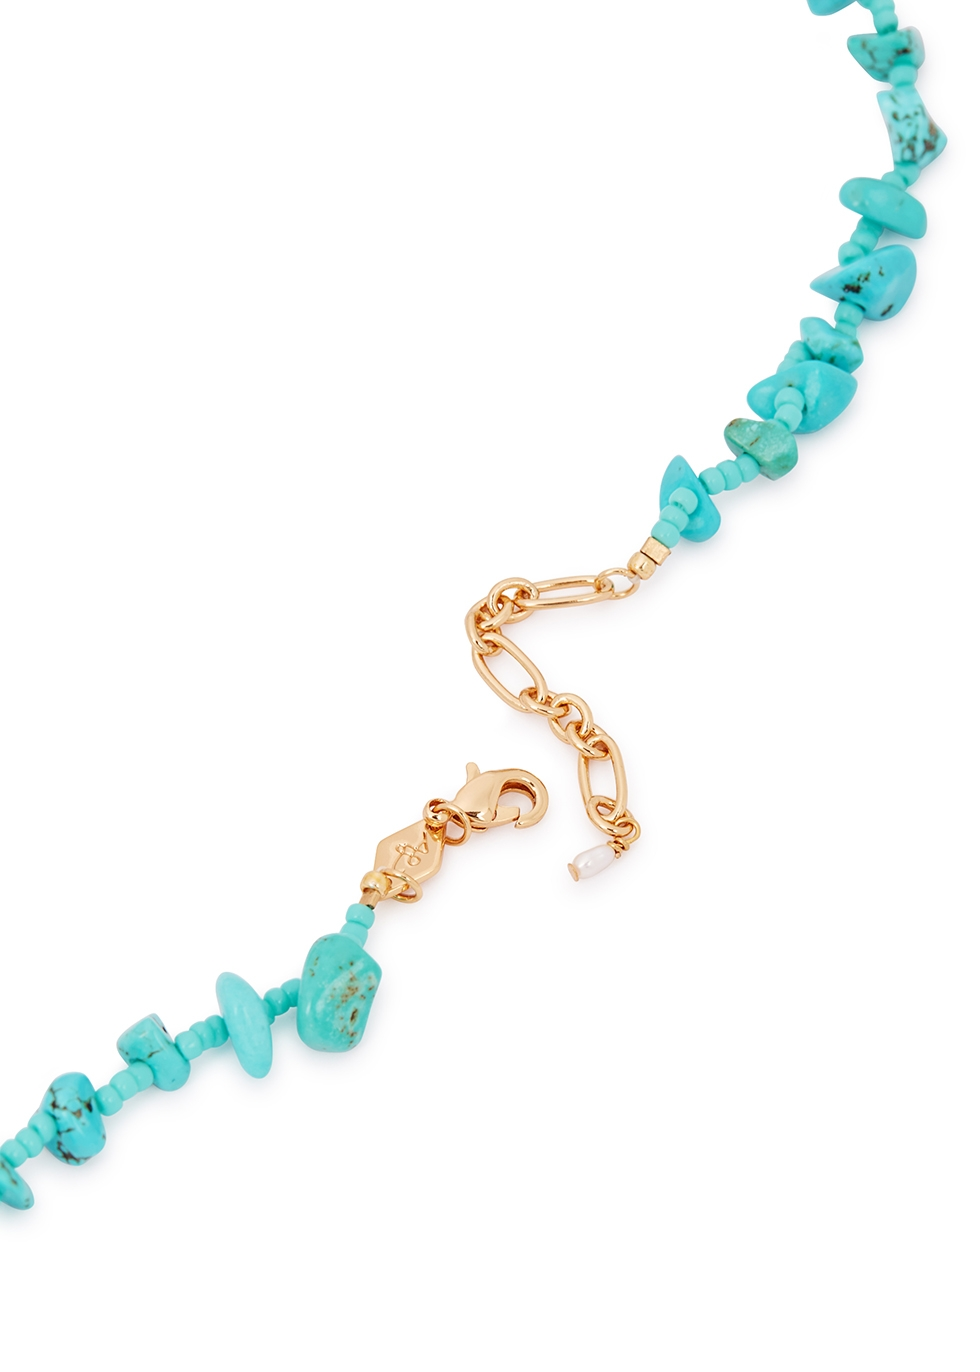 Reef 18kt gold-plated turquoise beaded necklace - ANNI LU